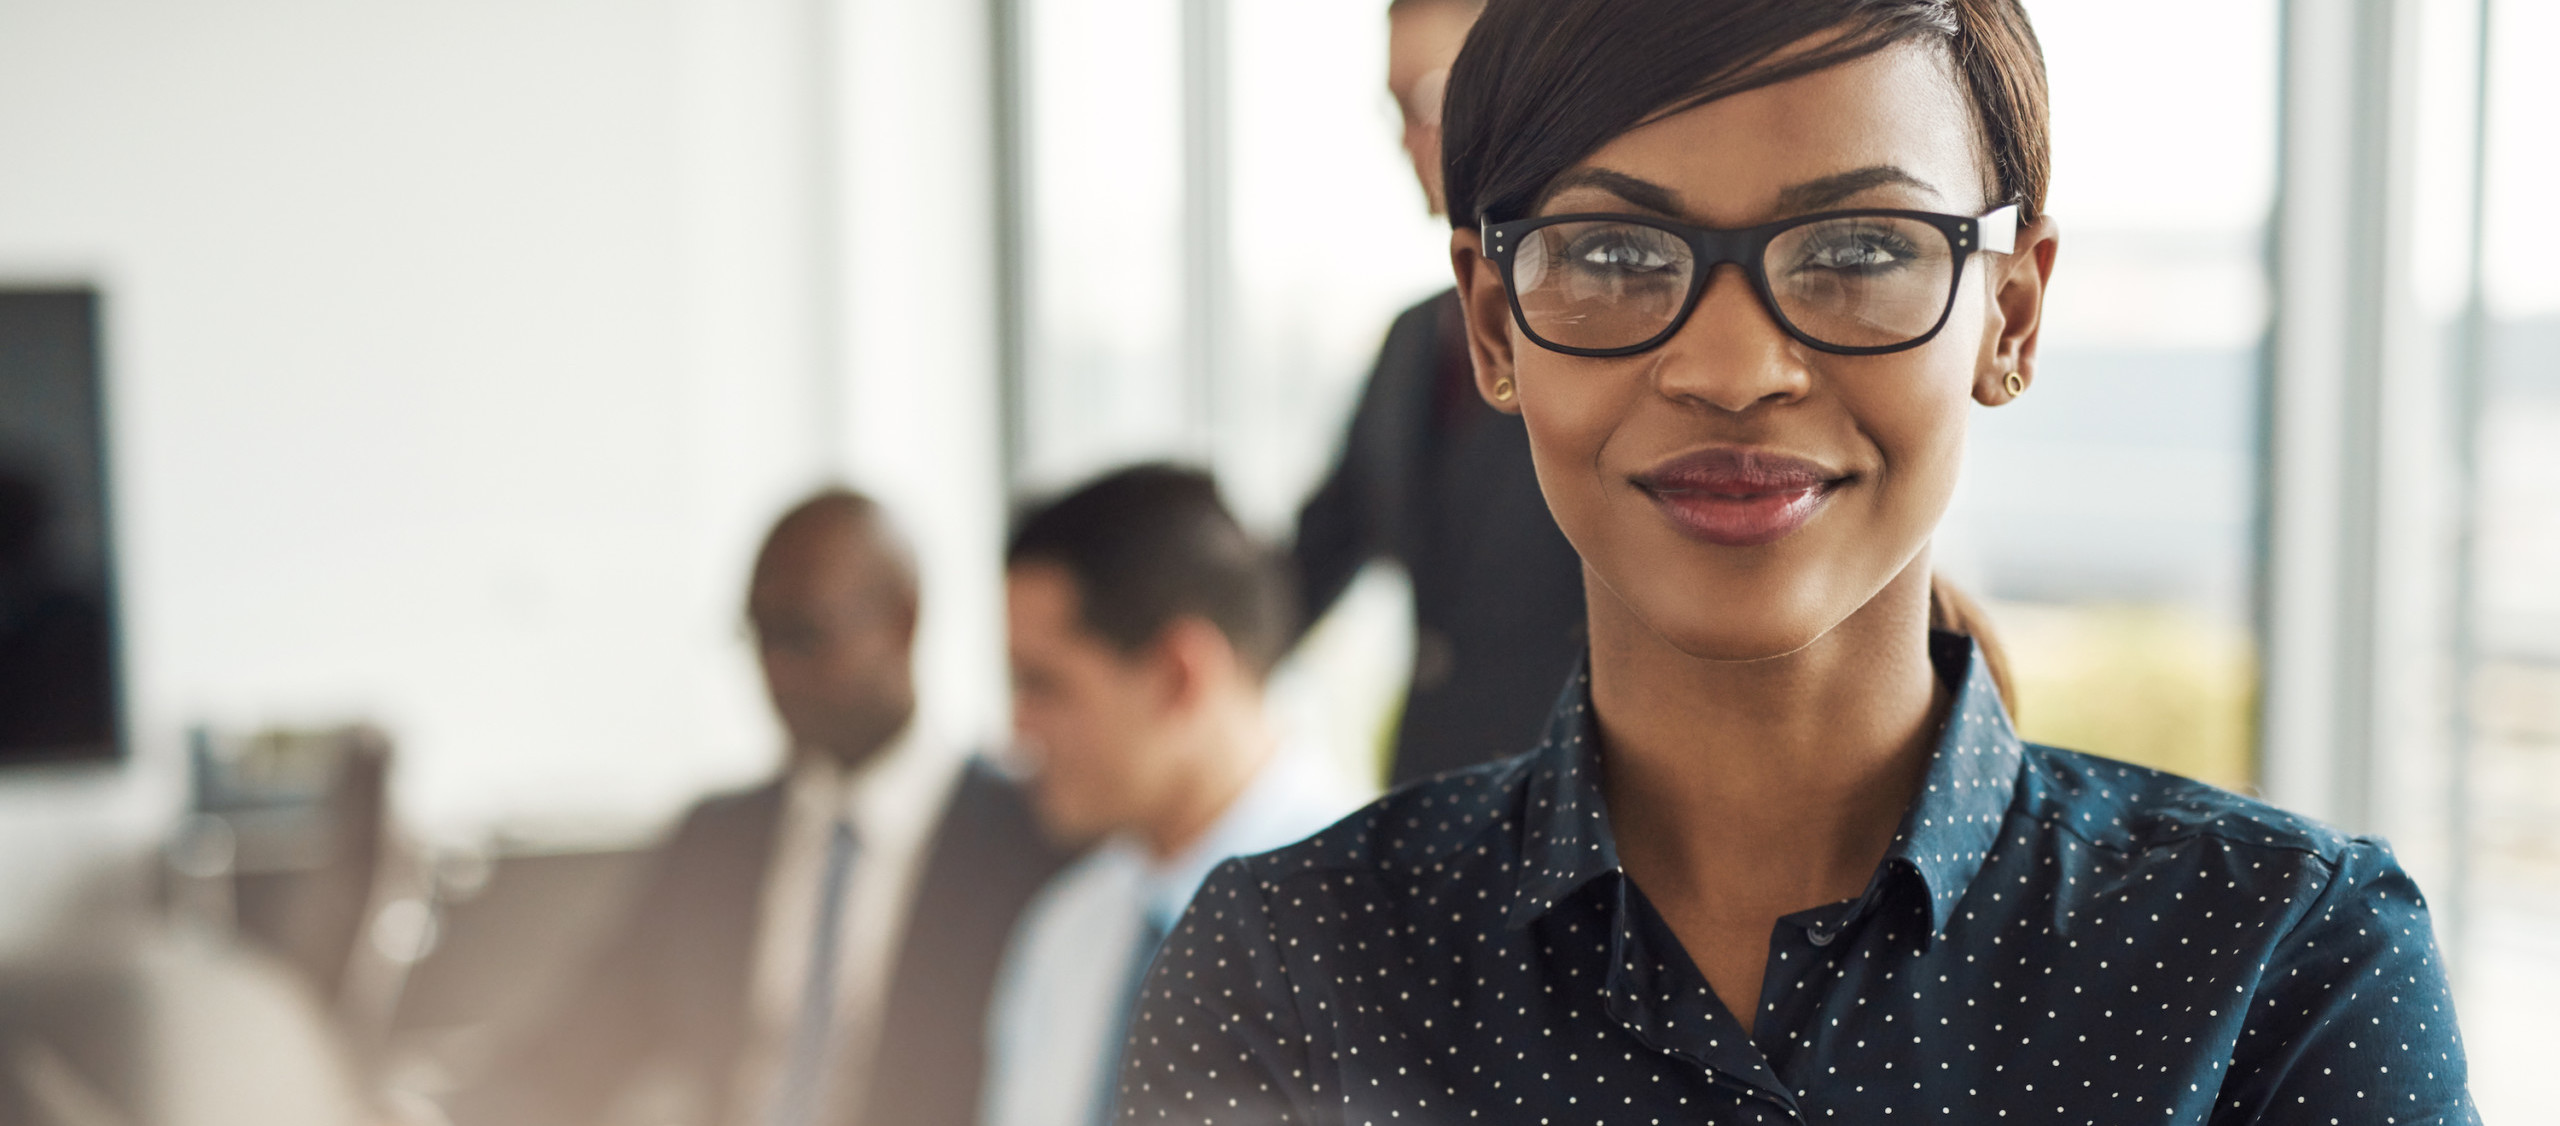 Workforce Diversity and Inclusion